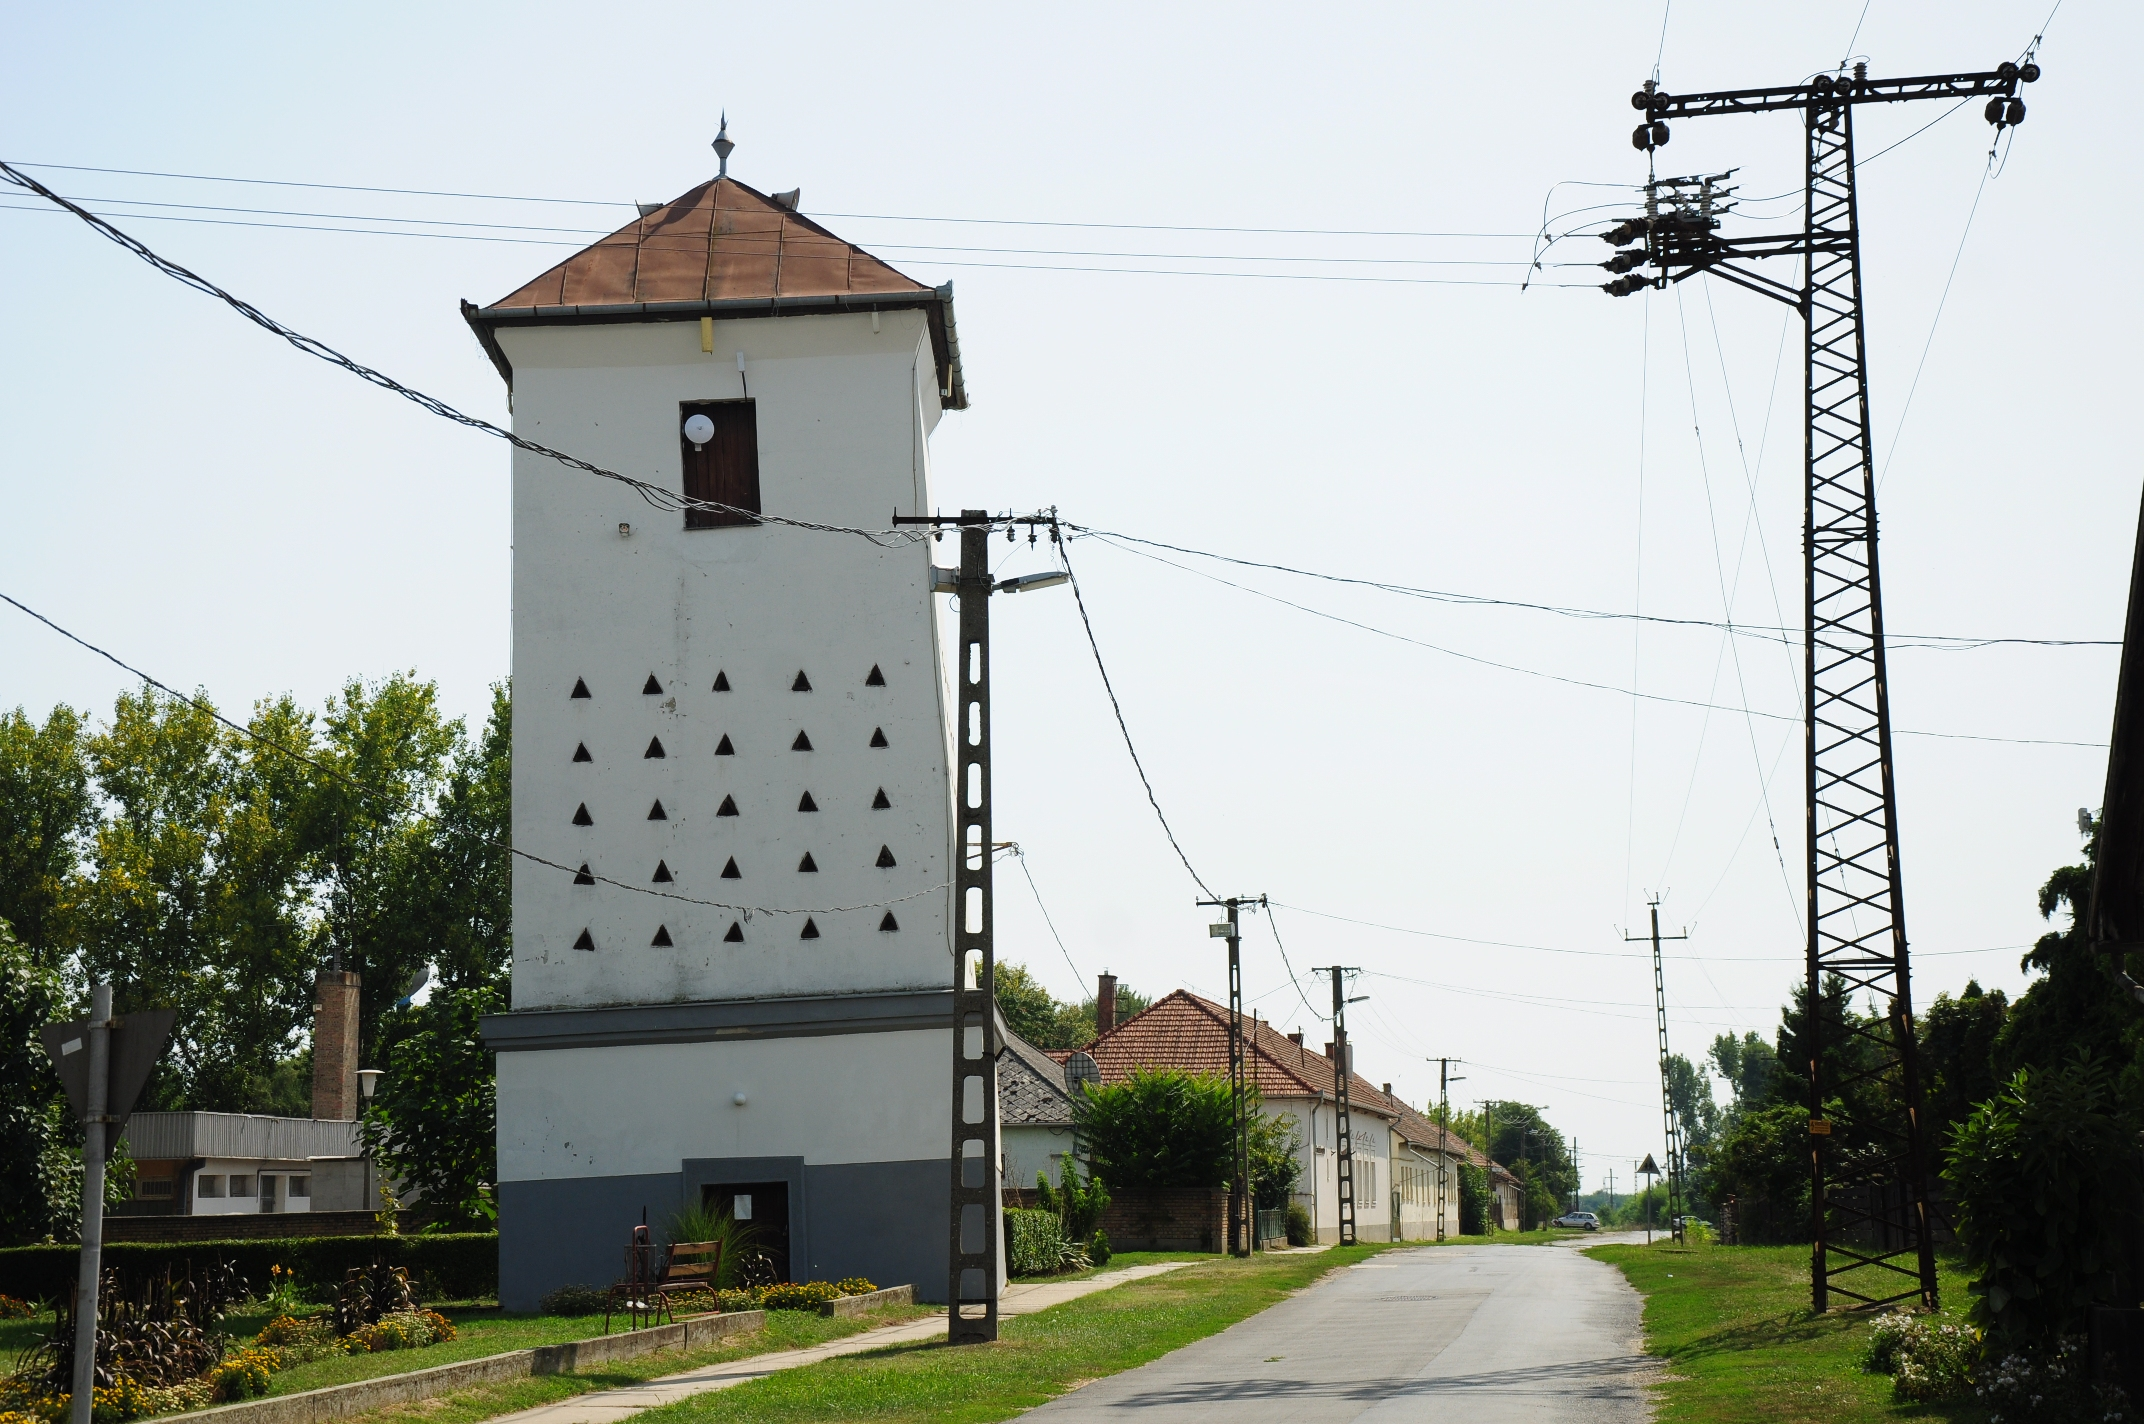 The leaning tower is an old granary building